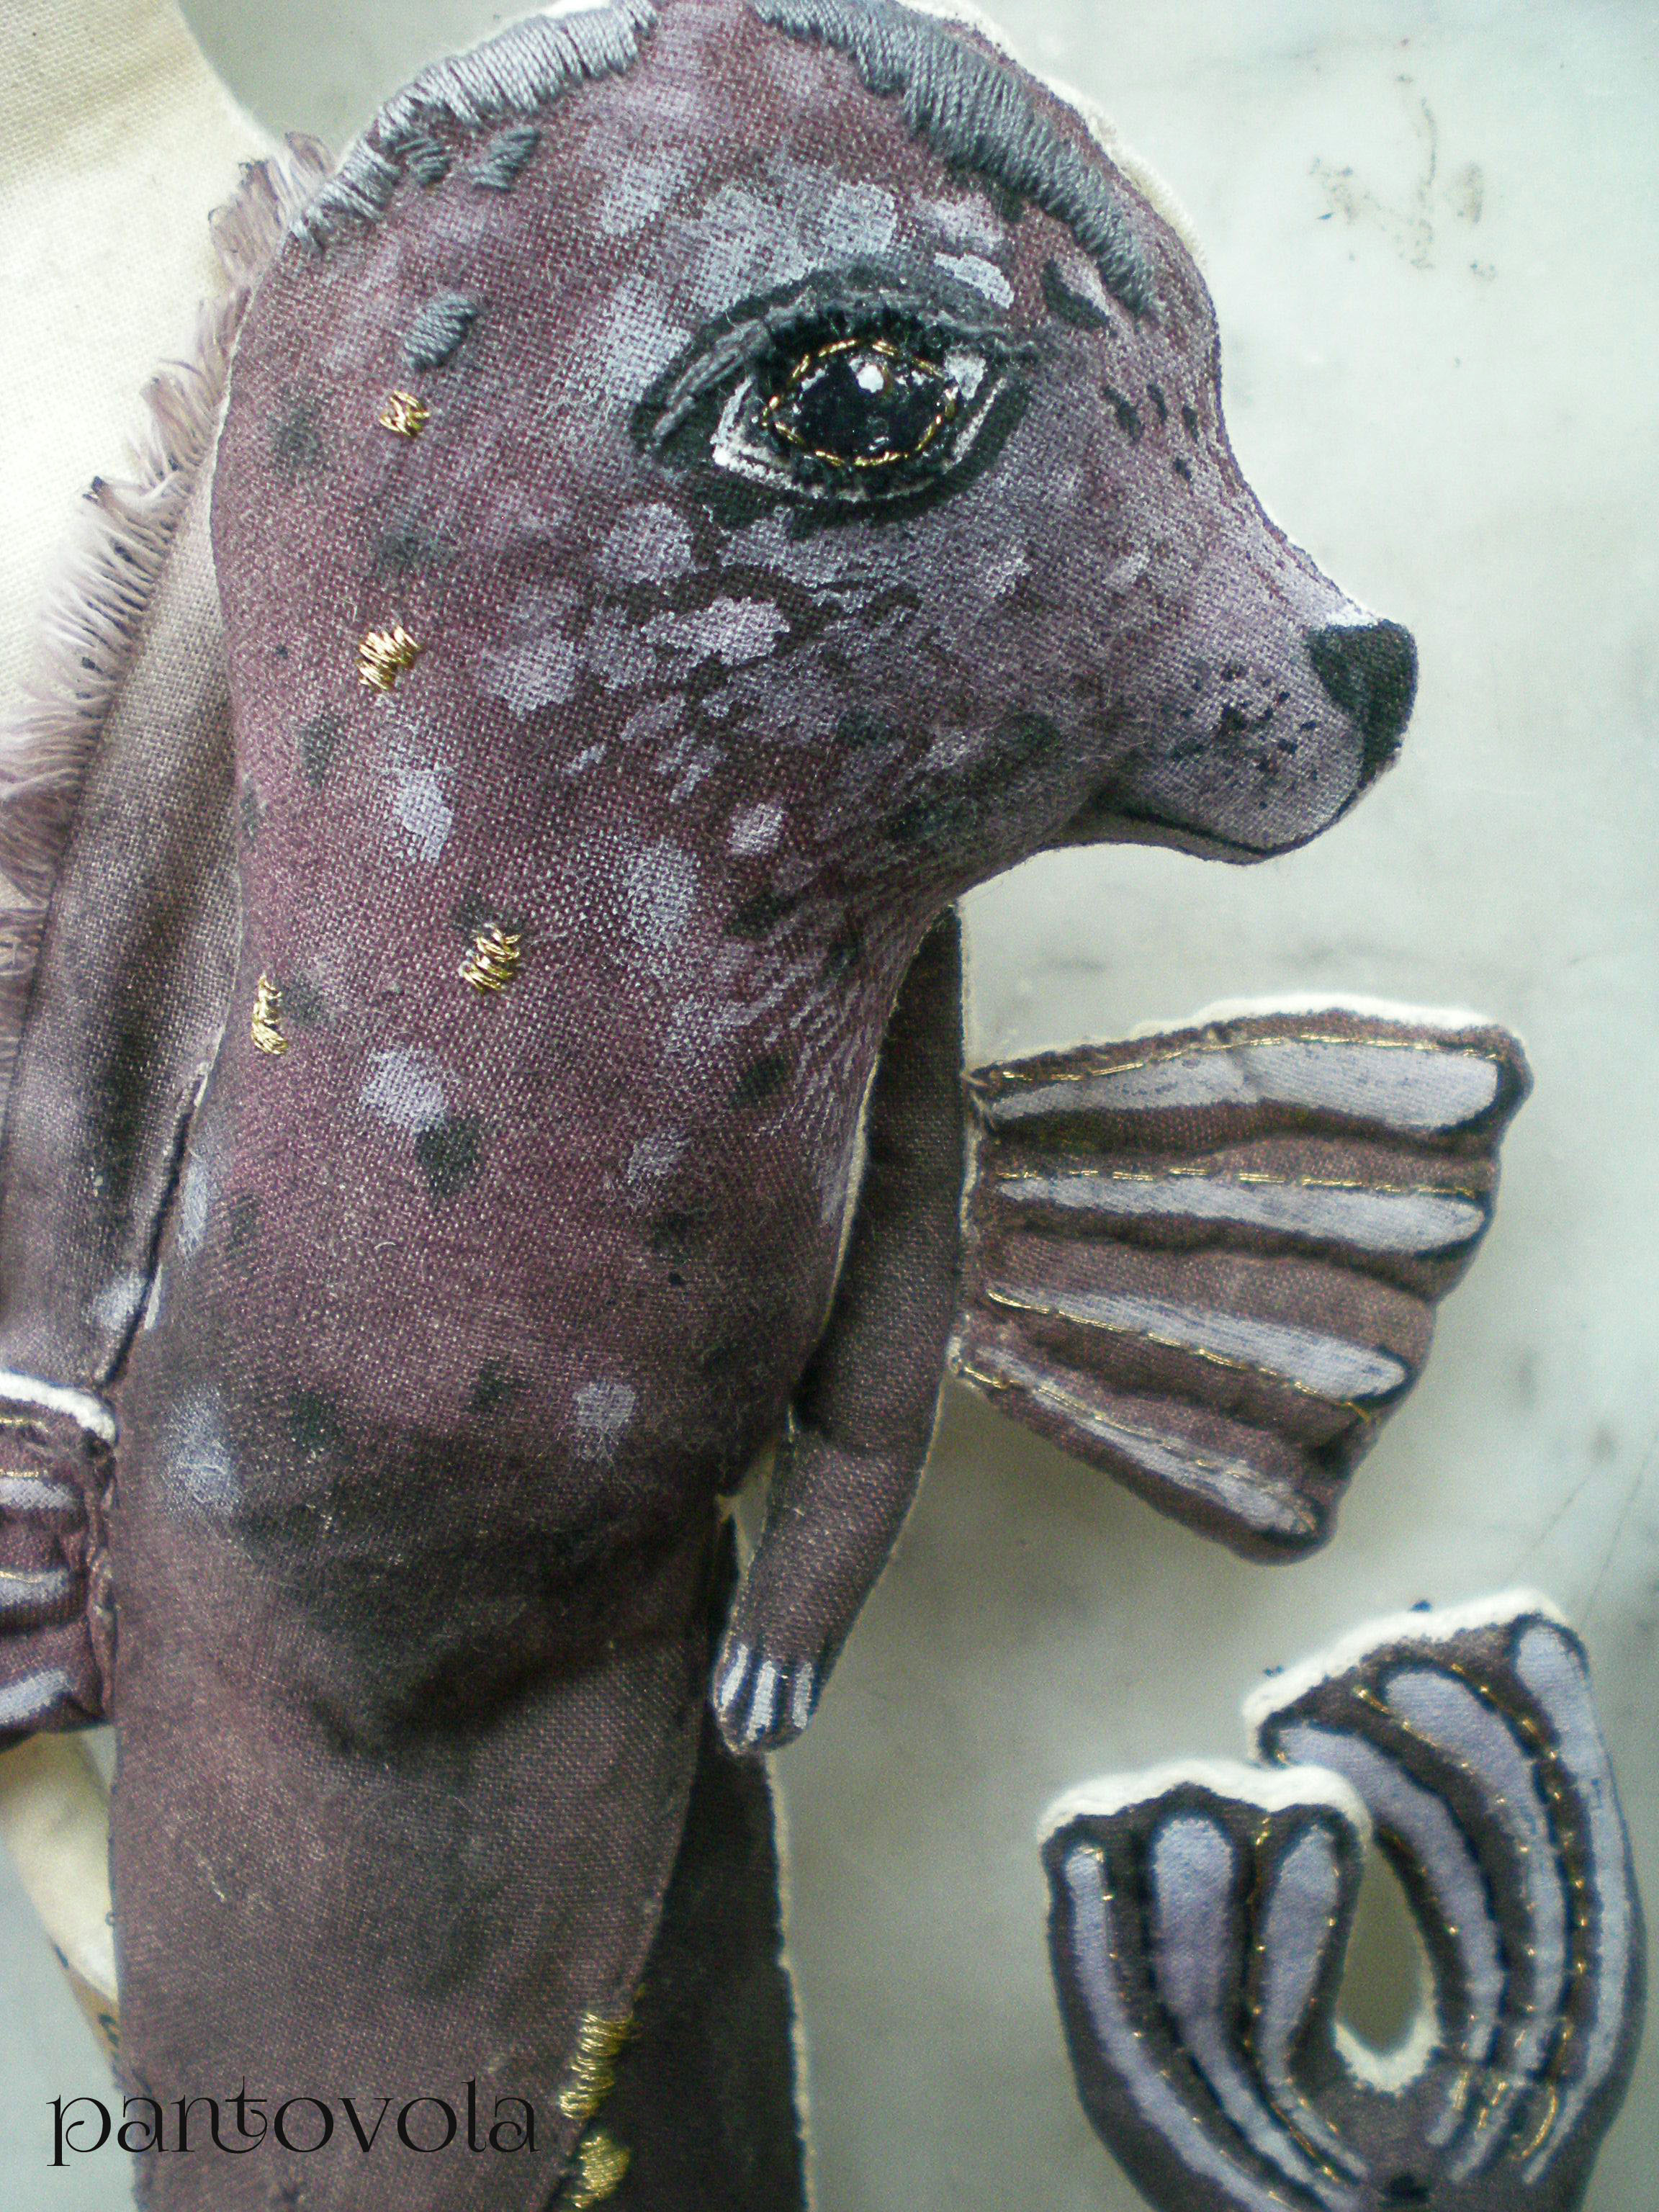 Ness Selkie detail